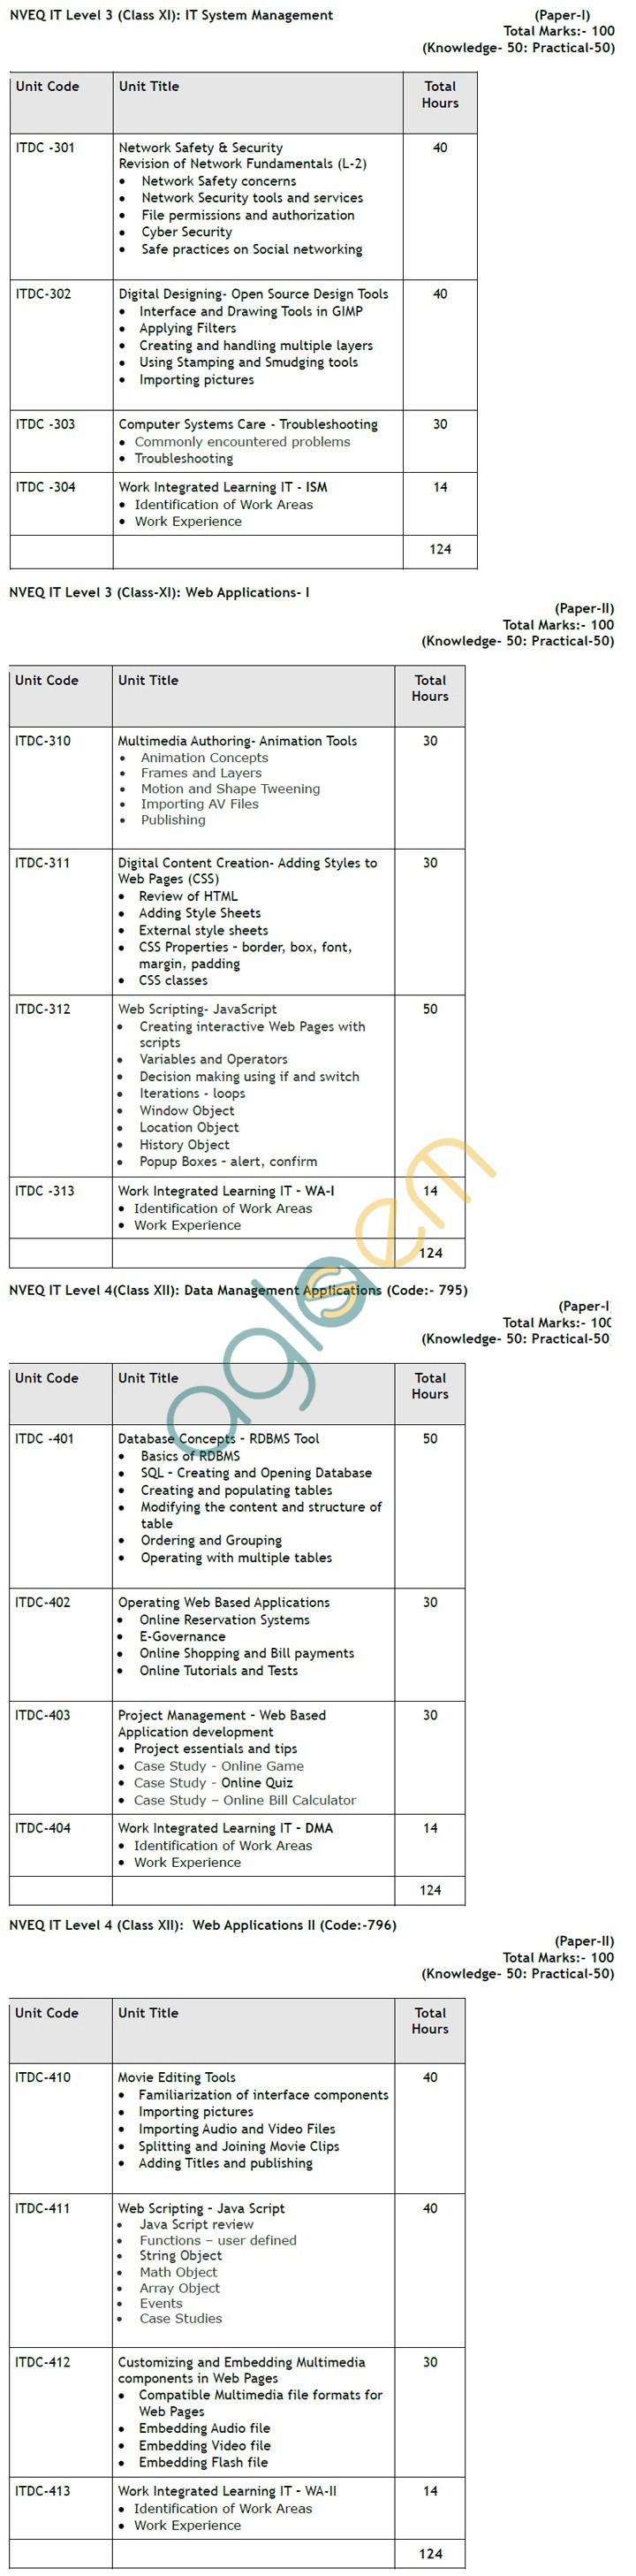 CBSE Vocational Syllabus for Information Technology – NVEQ IT Level 3 and 4